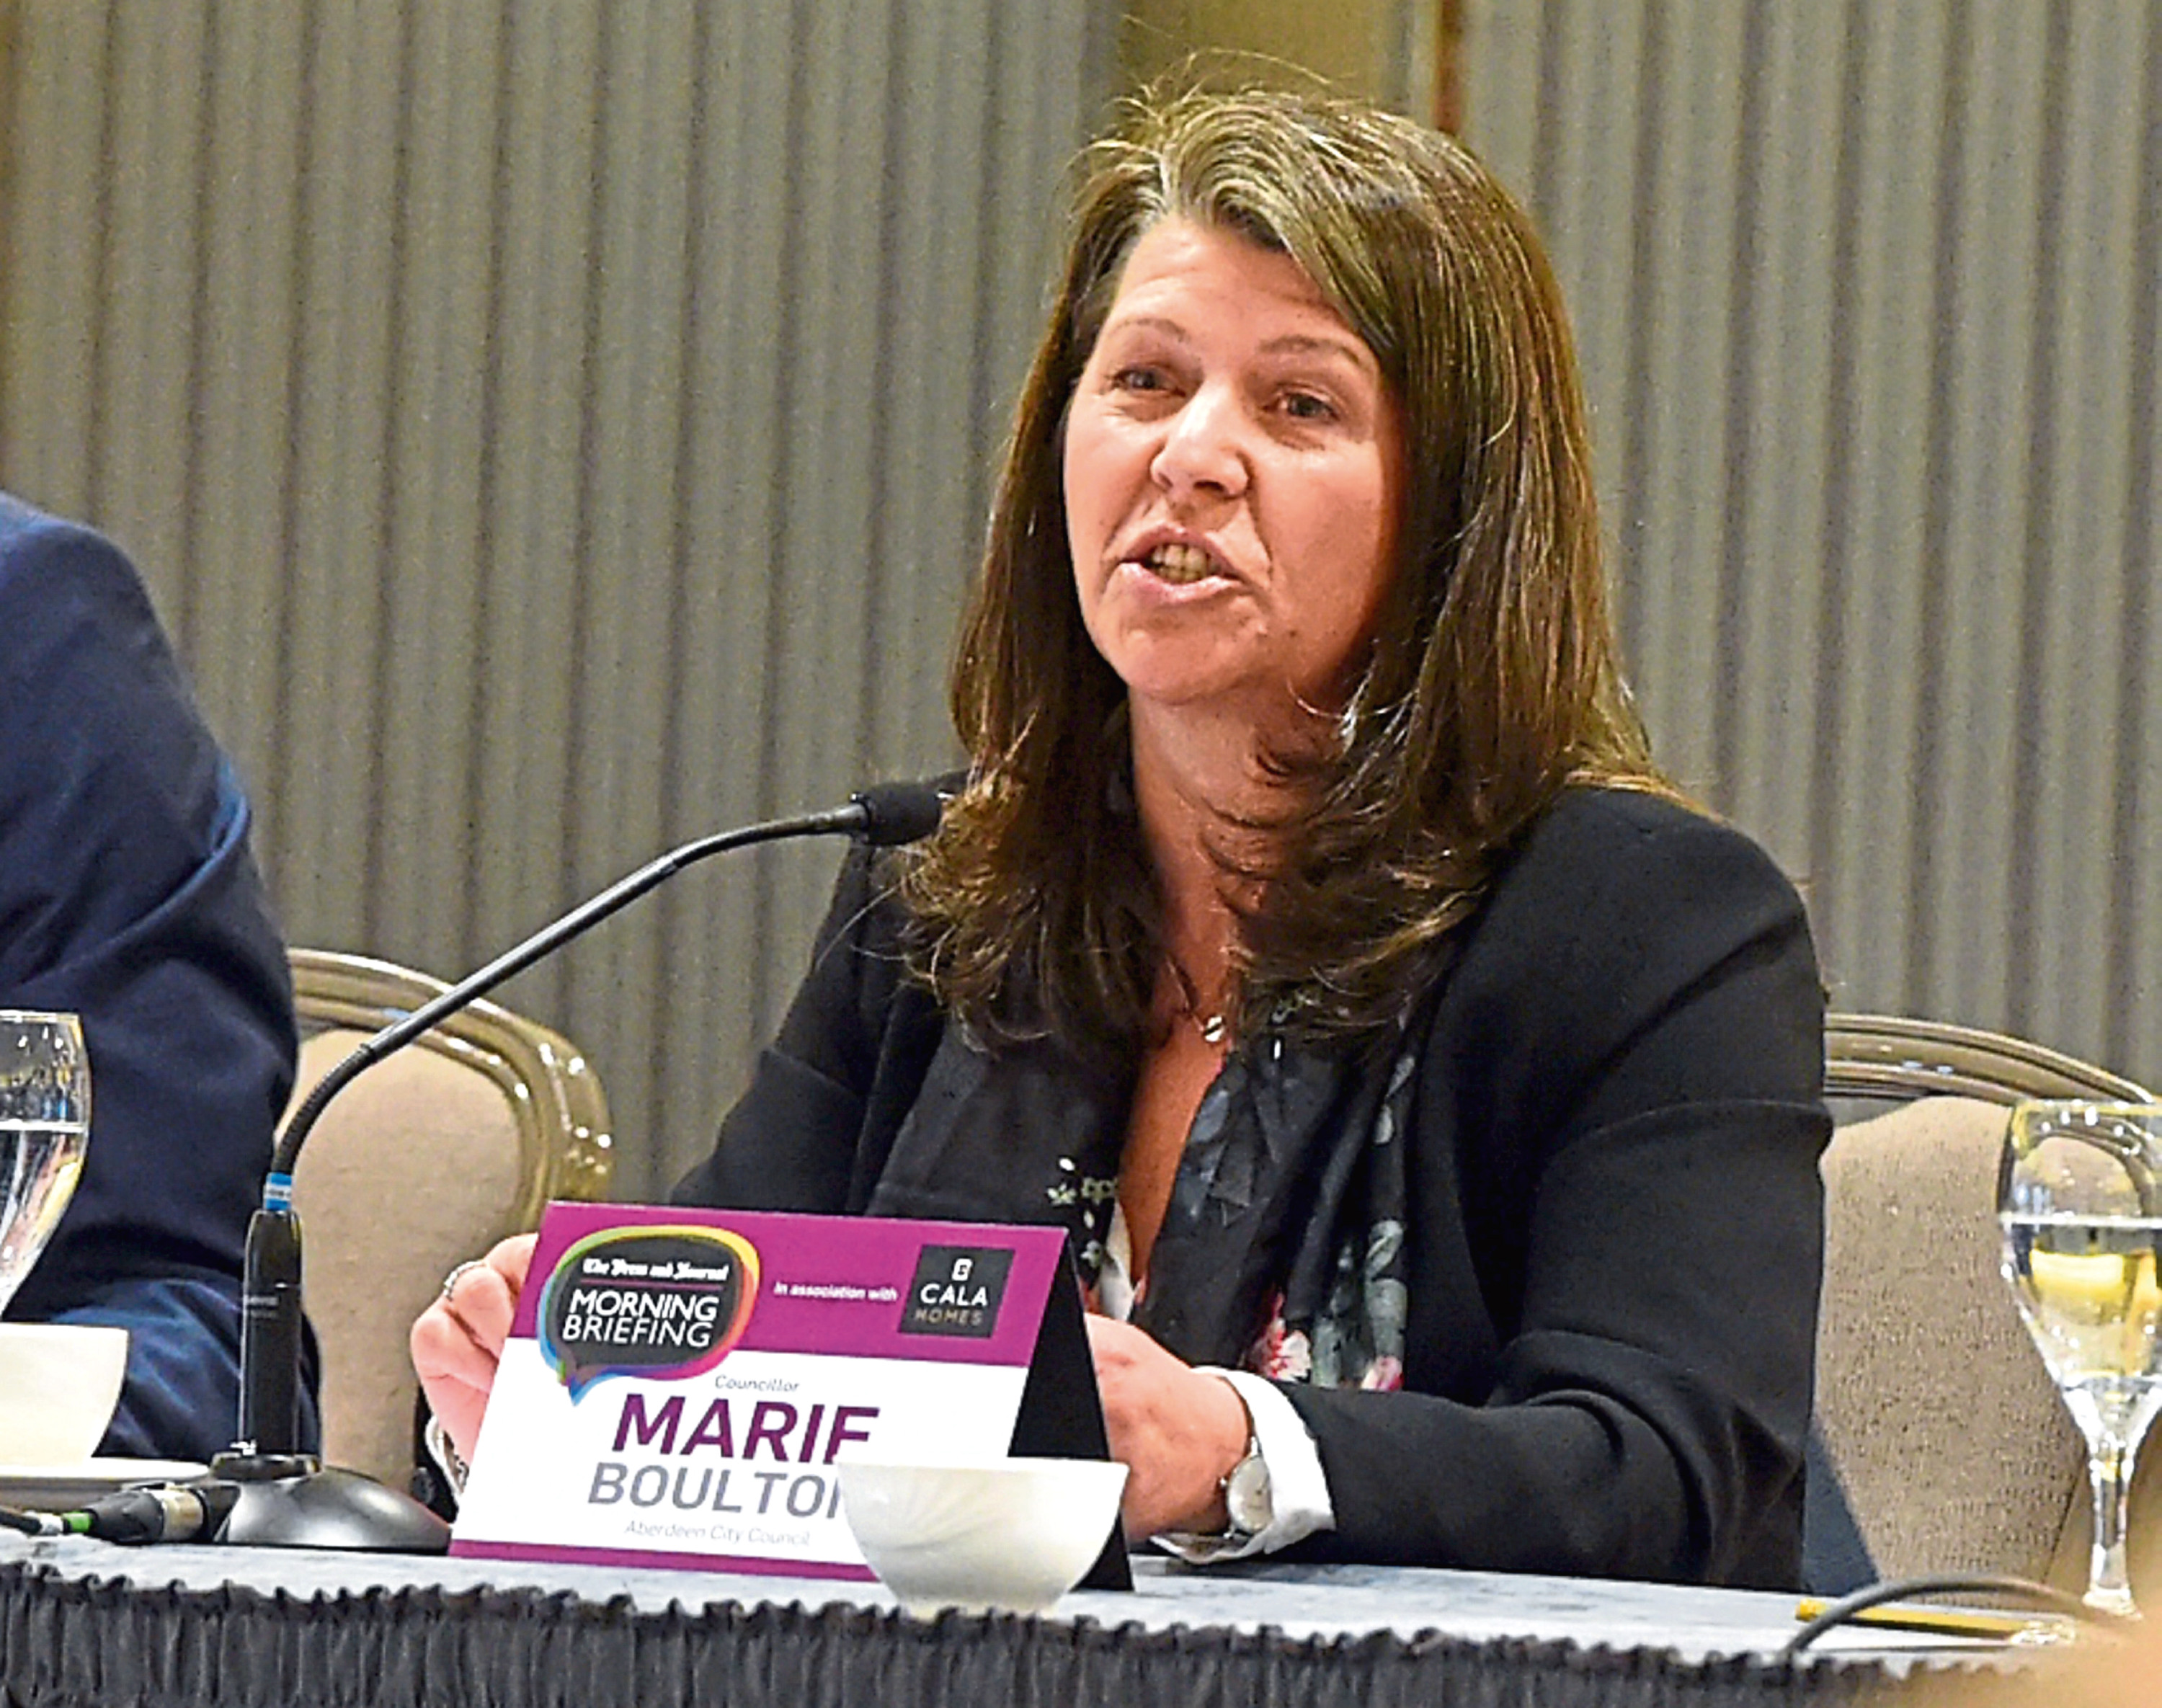 Marie Boulton has hit back after facing calls to resign